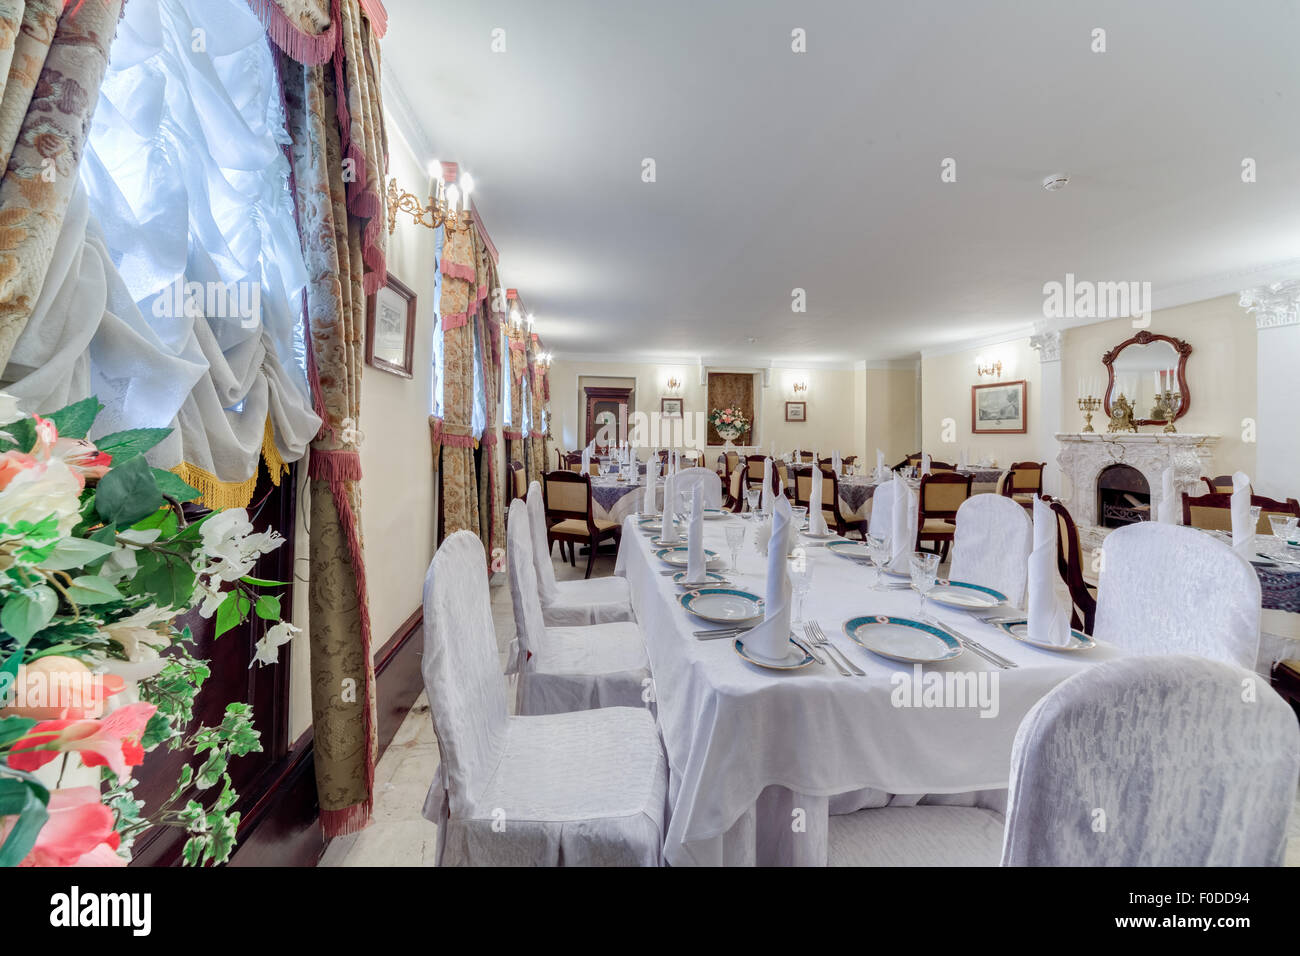 The interior of the restaurant of Russian cuisine 'Demidov'. The restaurant is located on the Fontanka River - Stock Image